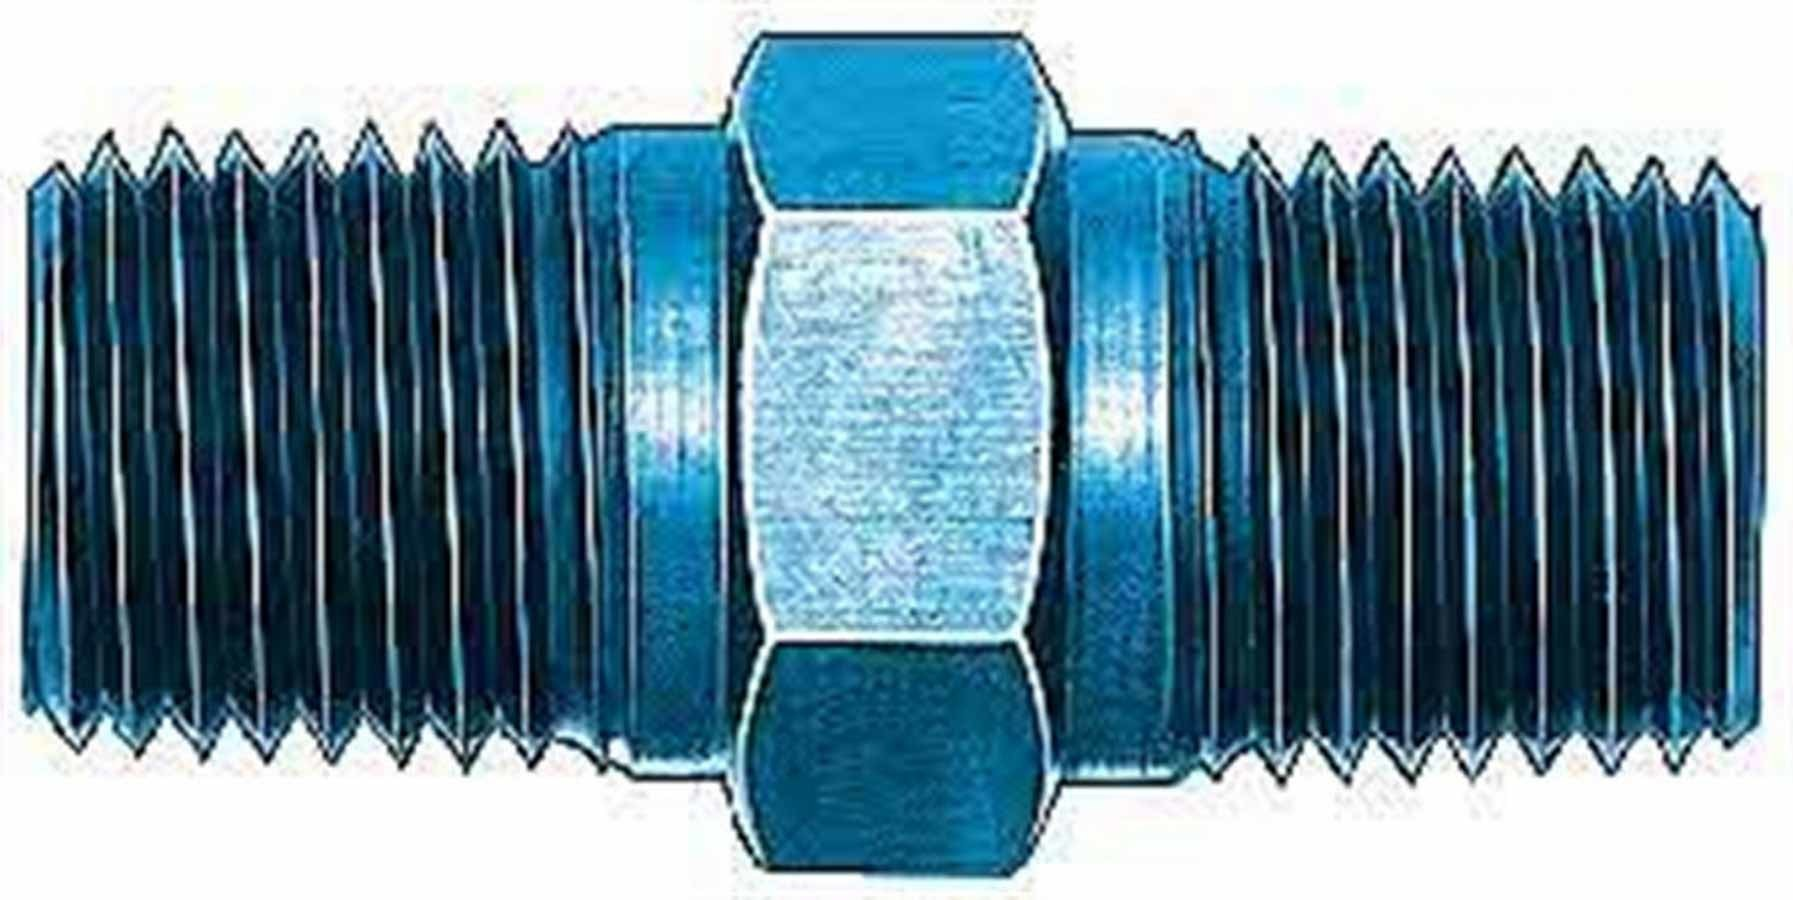 Aeroquip FCM2134 Fitting, Adapter, Straight, 3/8 in NPT Male to 3/8 in NPT Male, Aluminum, Blue Anodize, Each